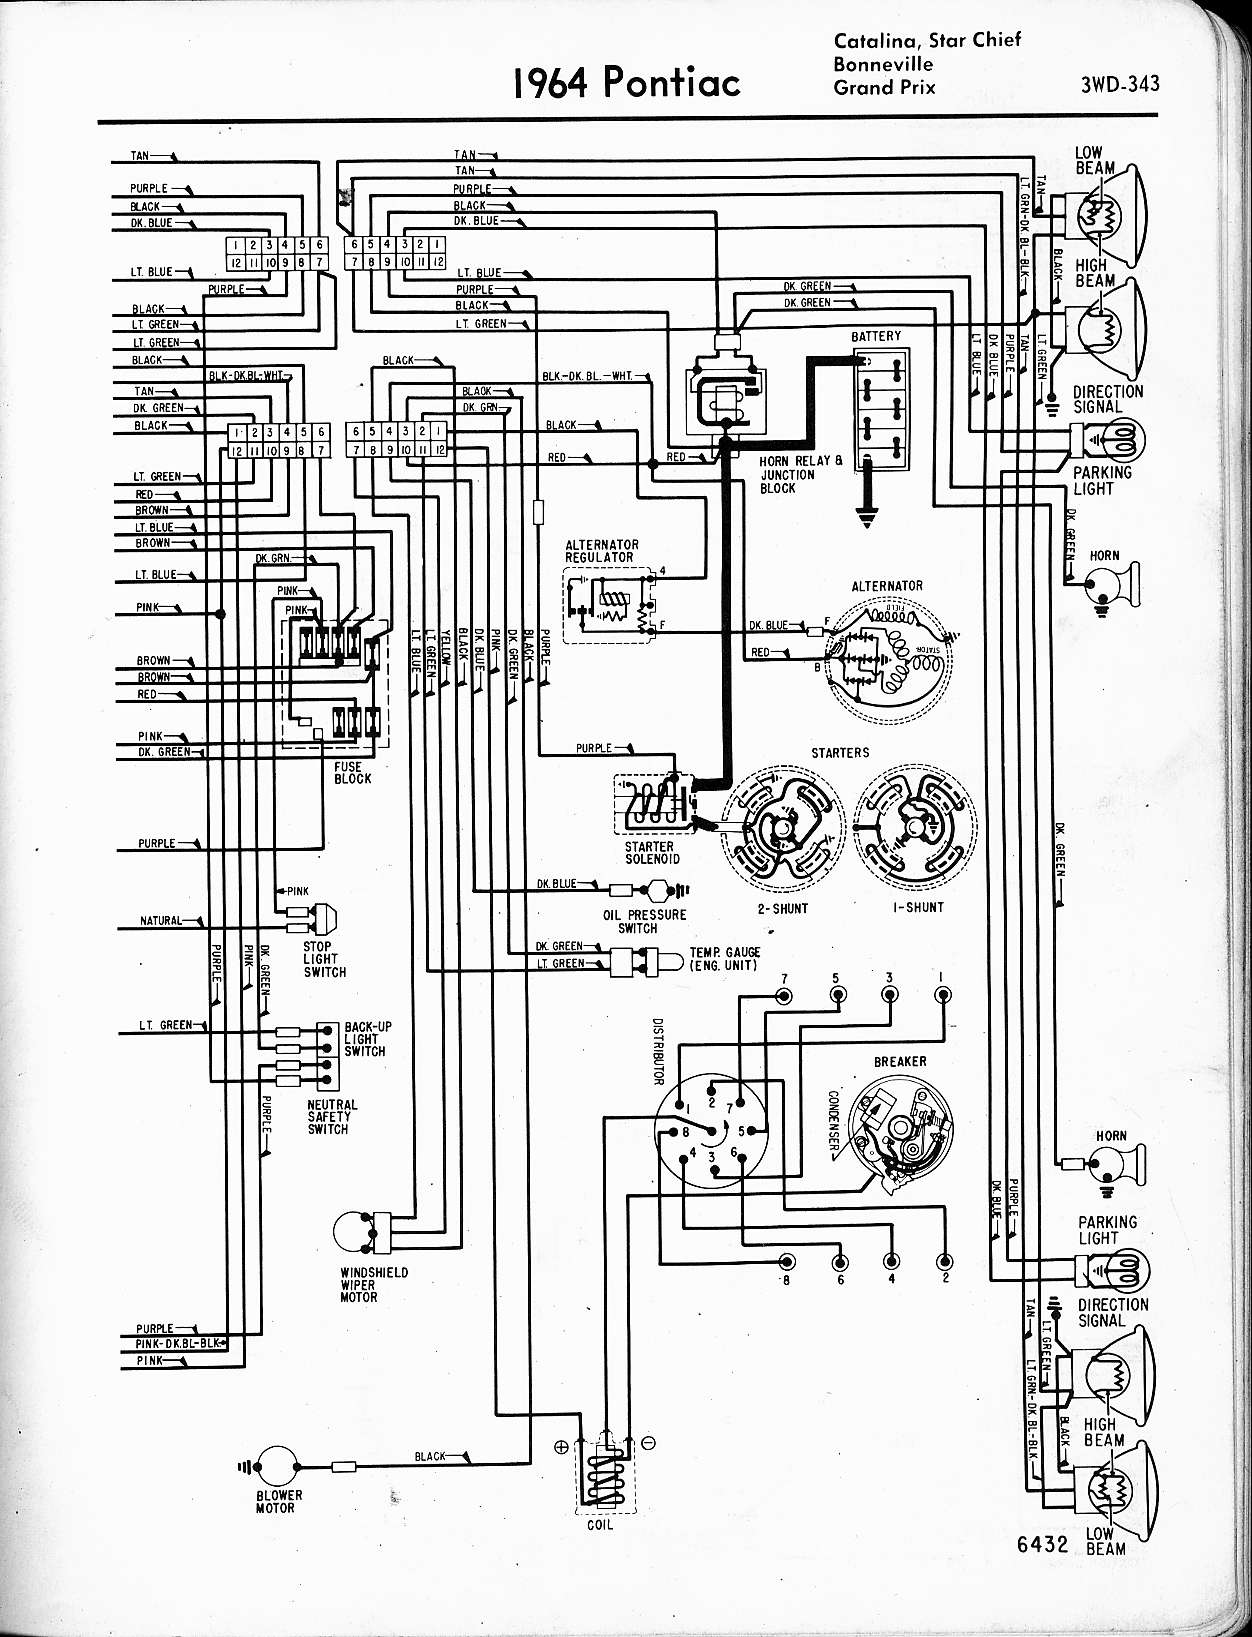 1968 Ford Falcon Wiring Diagram Archive Of Automotive Mercury Cyclone Schematic Detailed Schematics Rh Technograffito Com